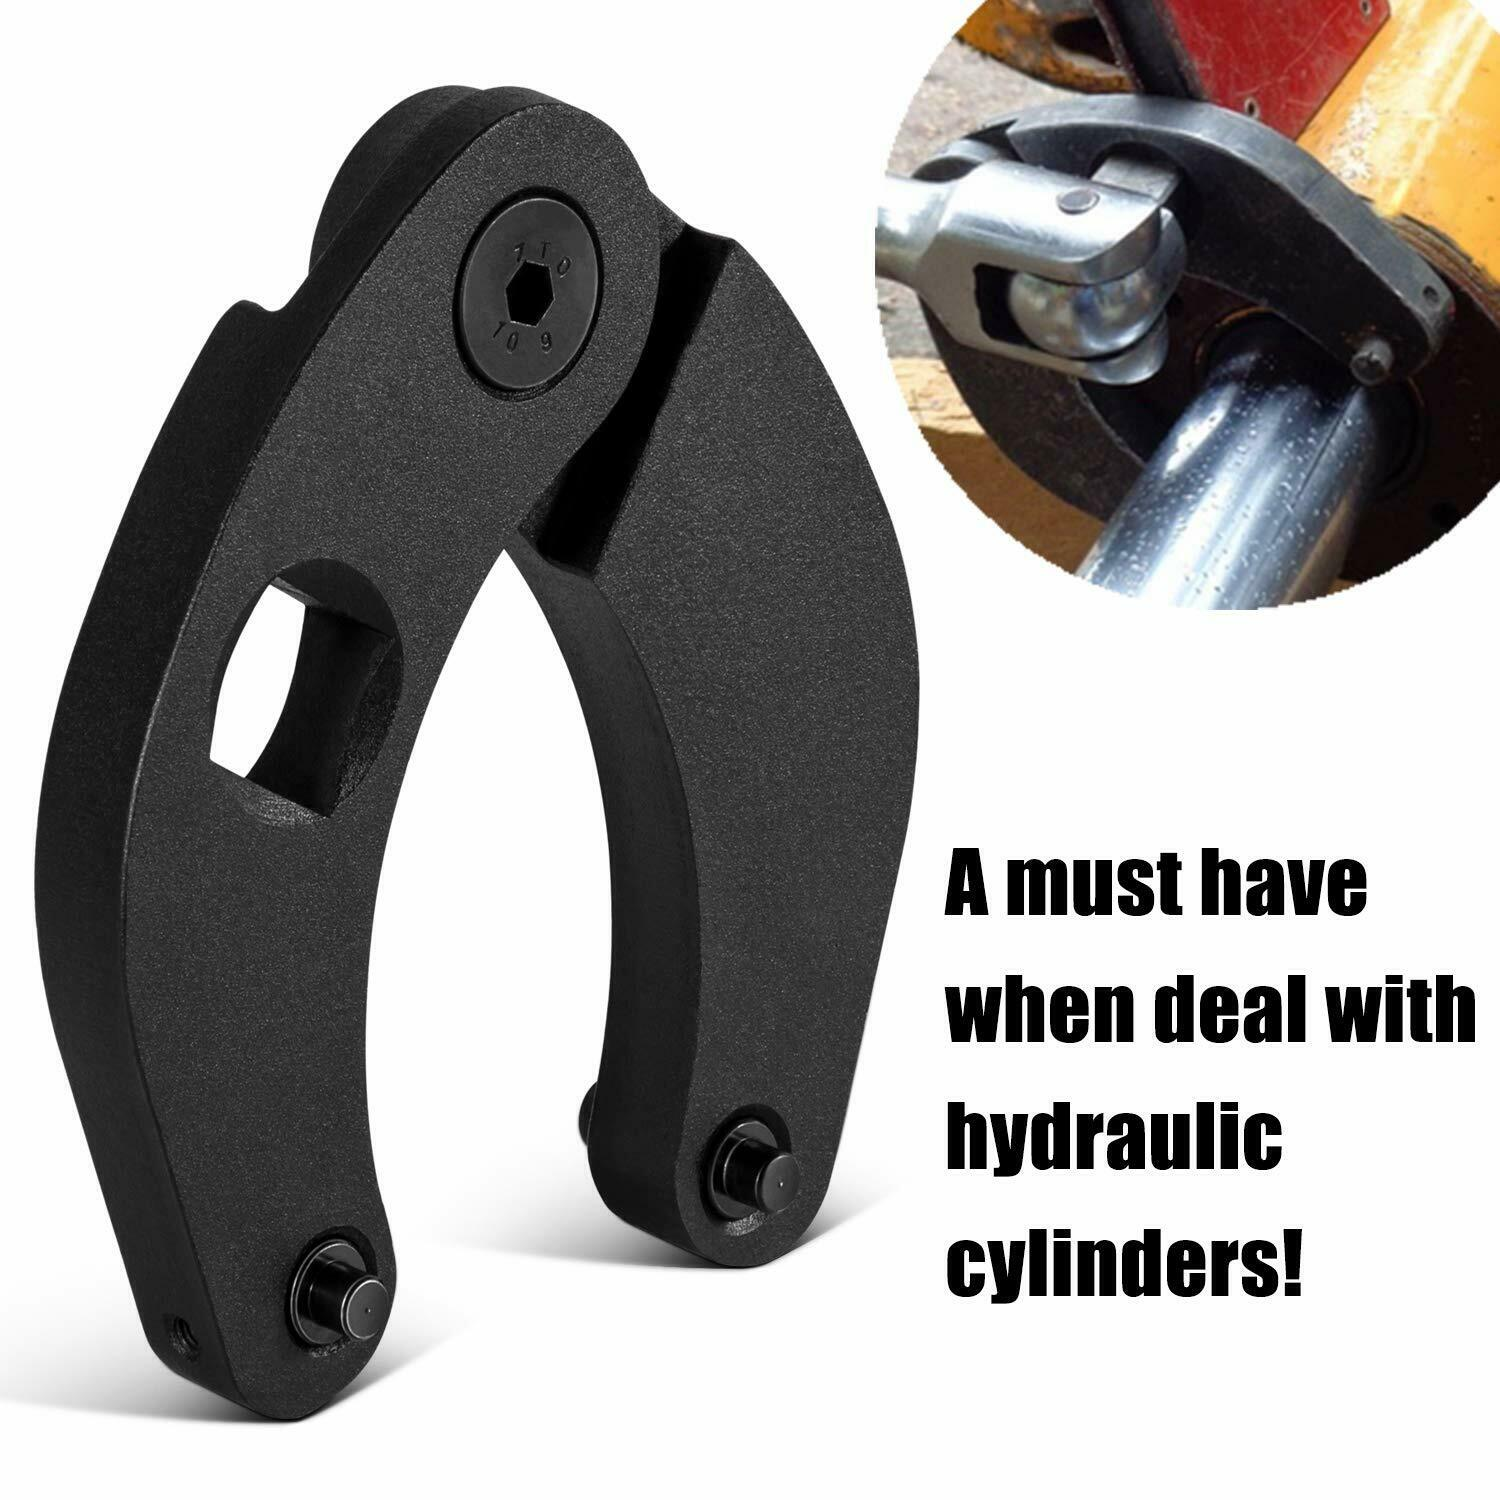 Chuang QIan 1266 Adjustable Gland Nut Wrench For Hydraulic Cylinders On Most Farm And Construction Equipment With Nuts 2